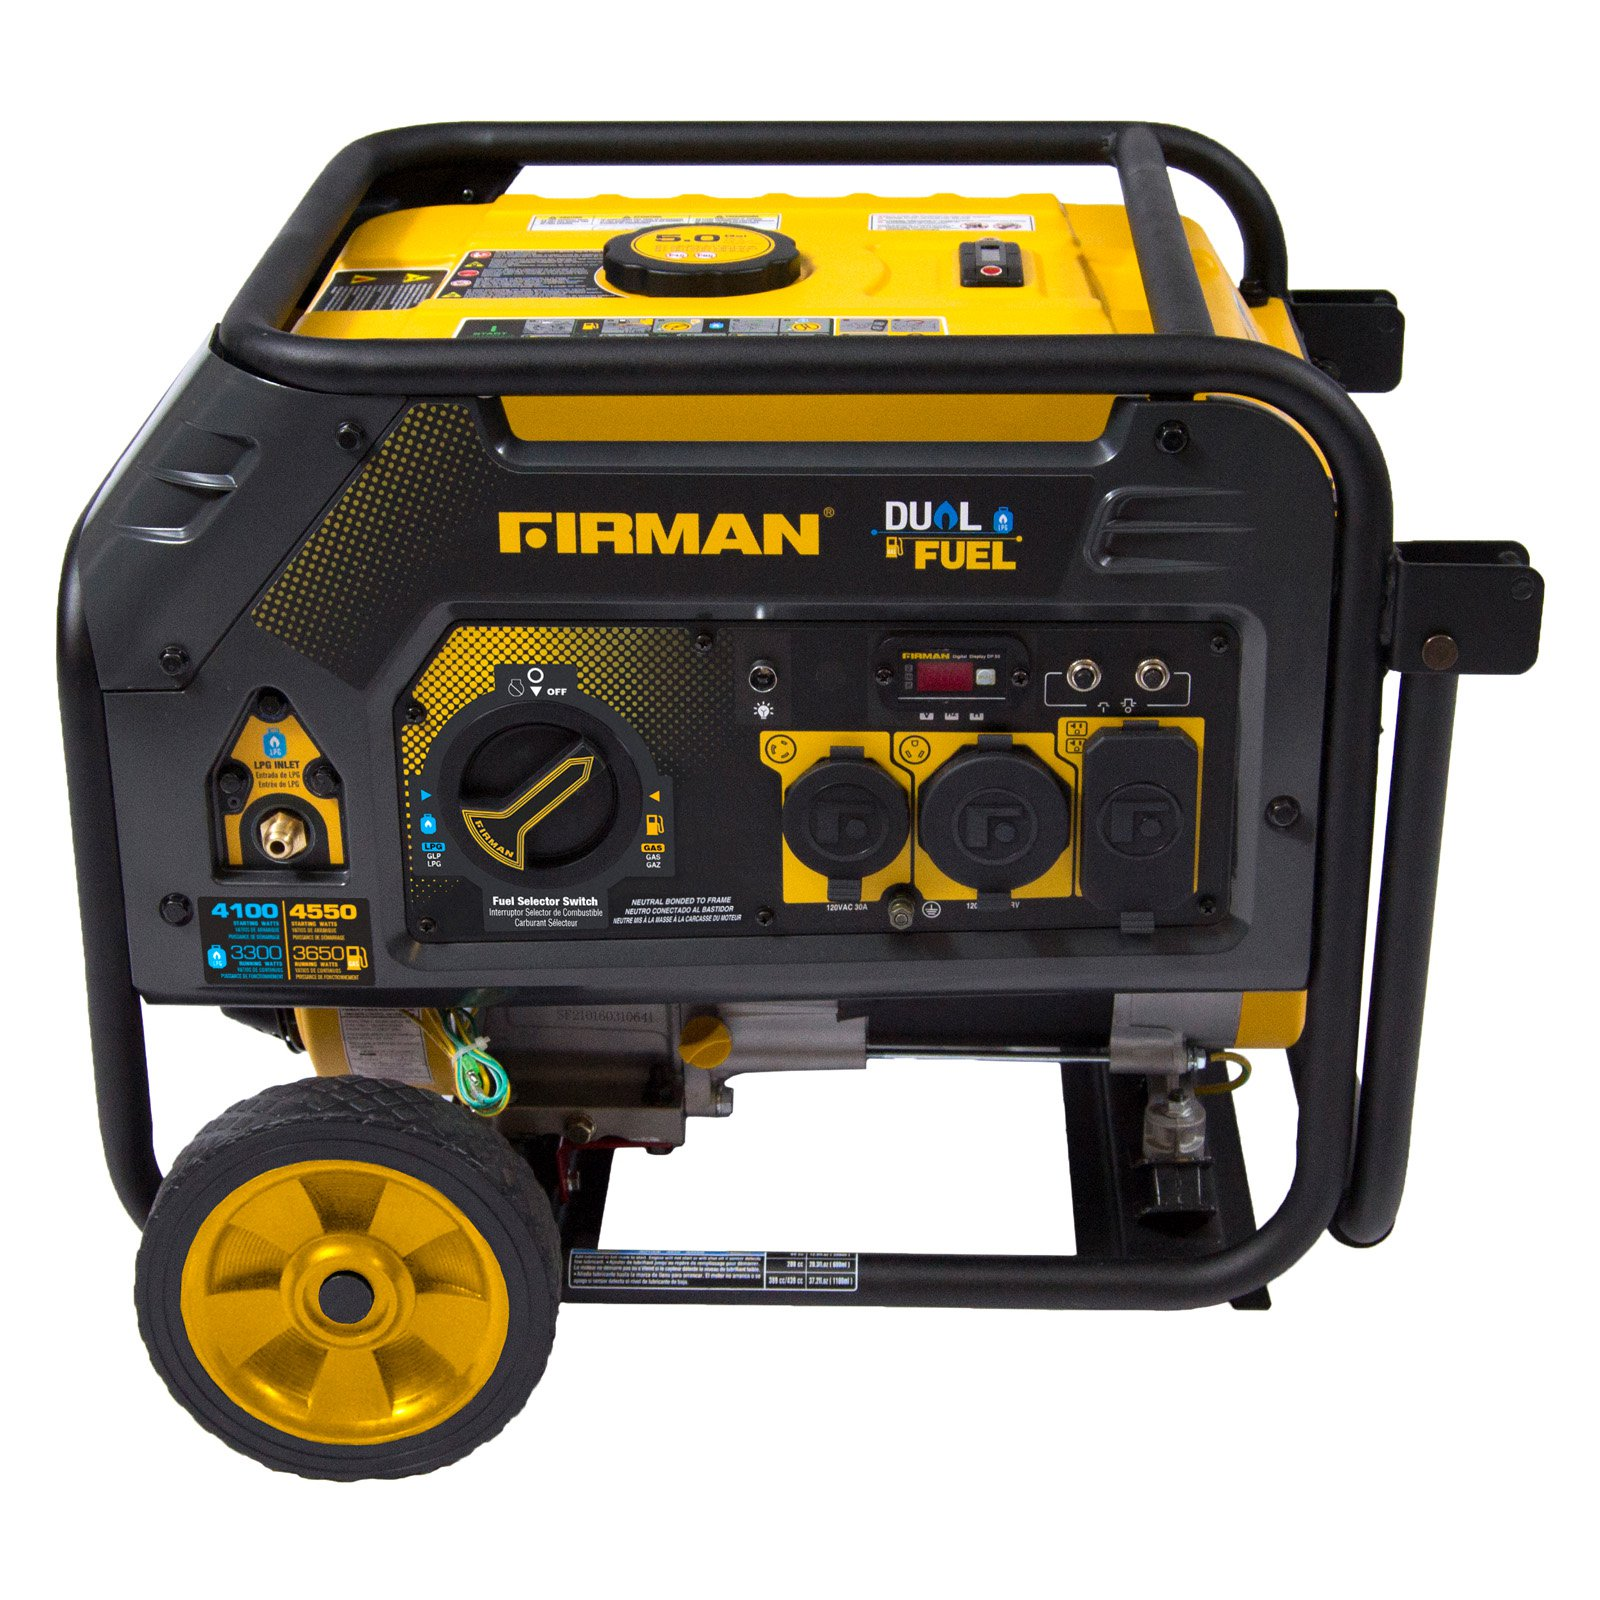 Firman Power Equipment Hybird Series H03652 3650/4550 Watt Dual Fuel Generator w/Recoil Start